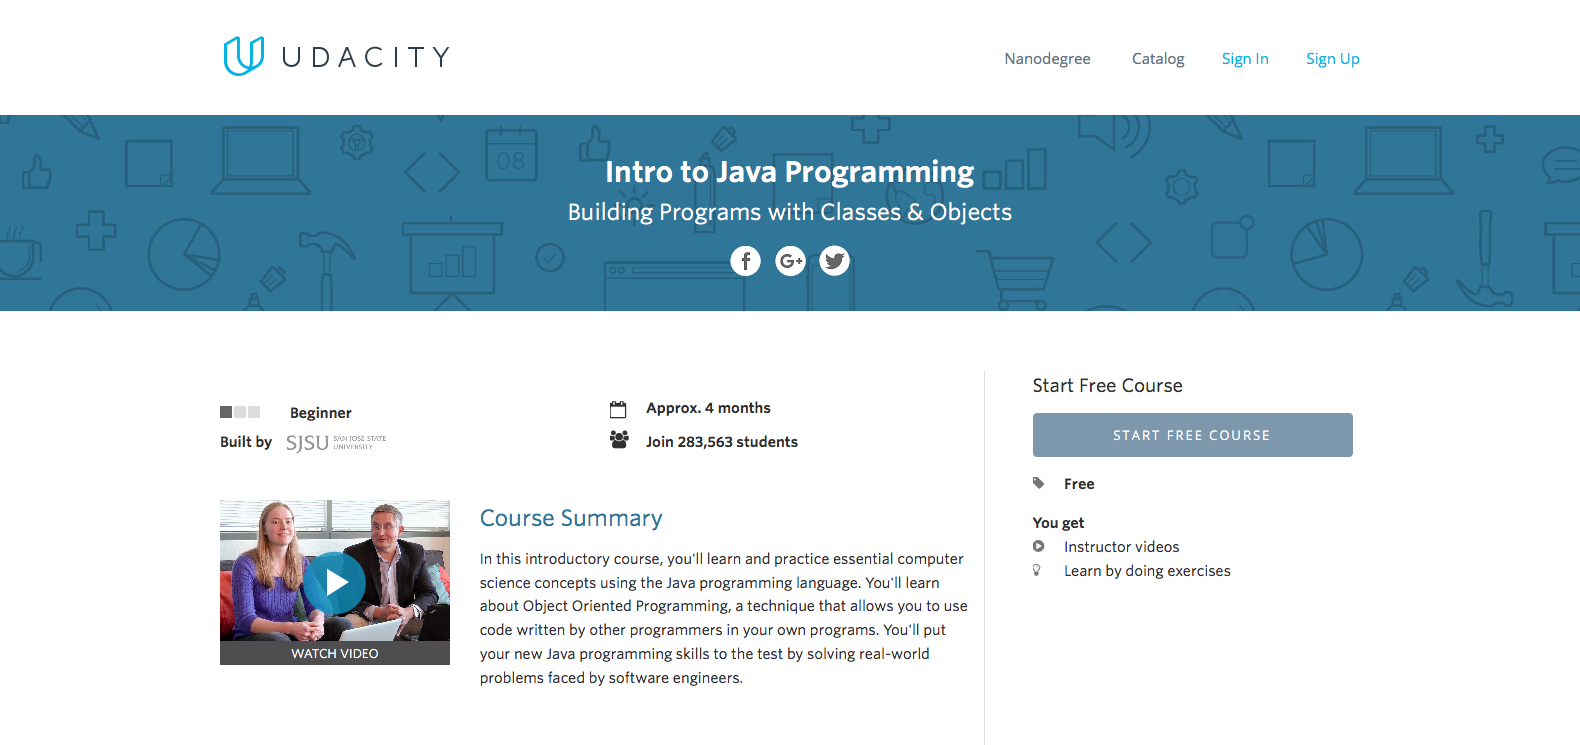 learn java online a guide codementor first time coders can truly benefit from taking udacity s intro to java programming this course is intended for absolute beginners not just in java